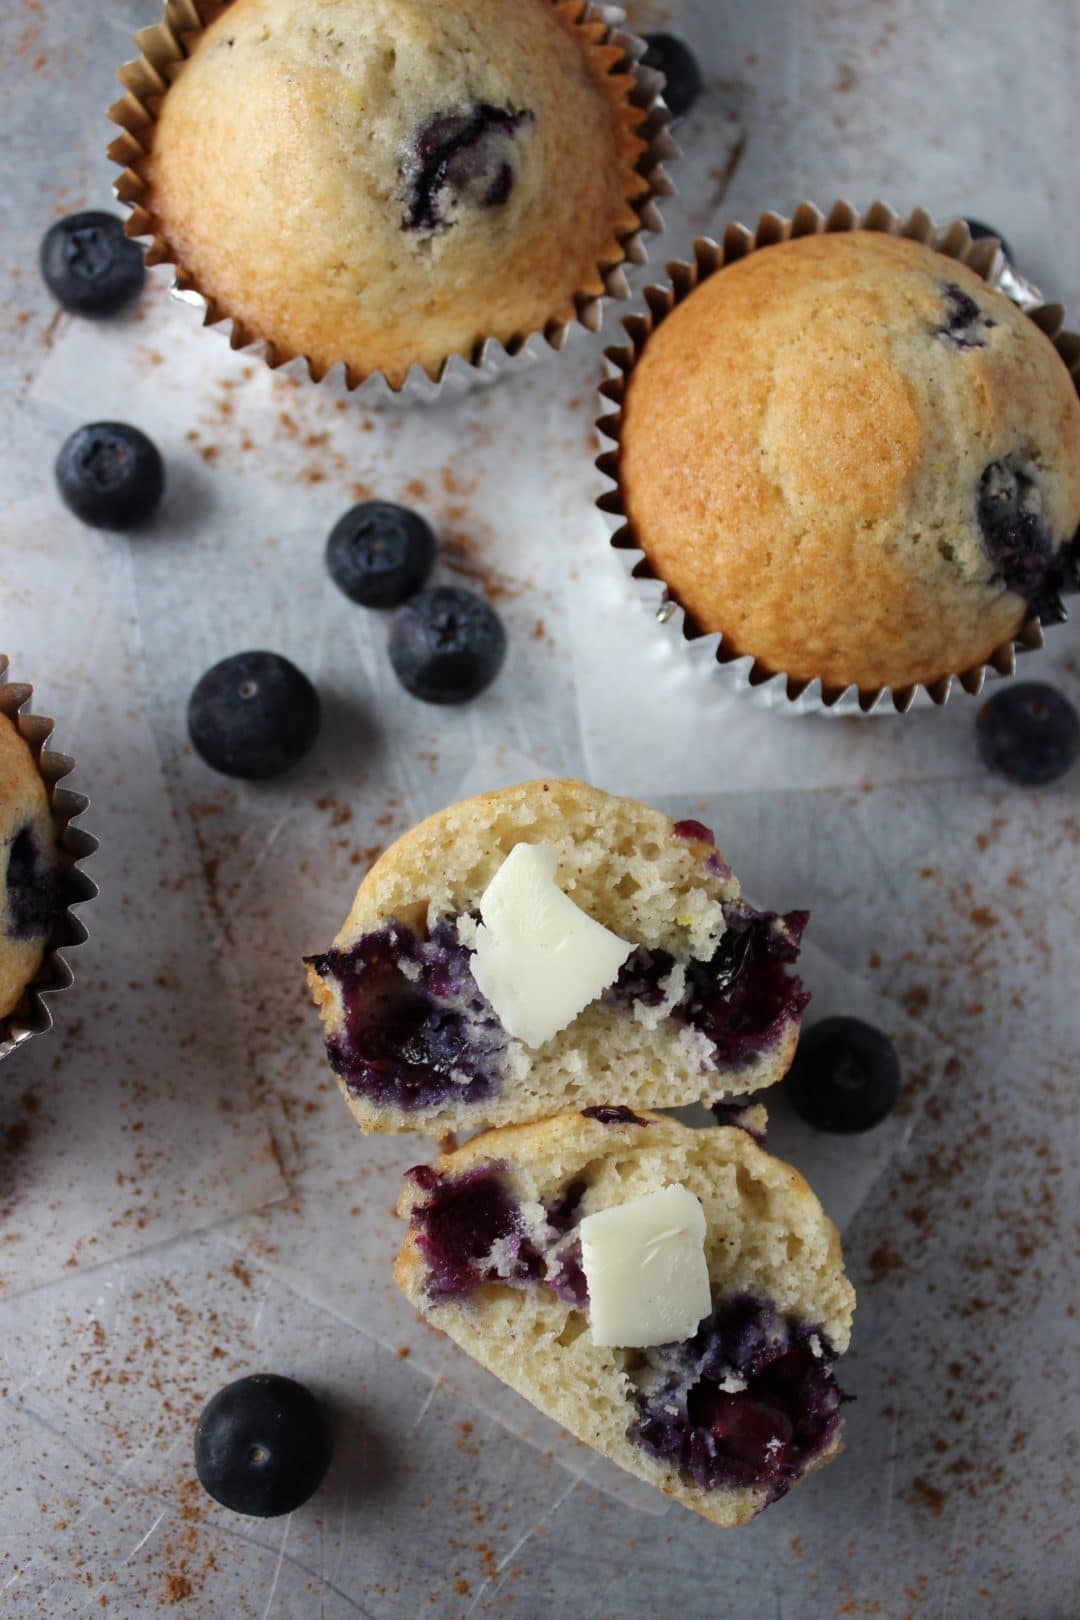 Blueberry Muffins - One bowl recipe with minimal ingredients and made with sweet blueberries. Sweet and delicious to enjoy anytime. simplylakita.com #muffins #blueberry